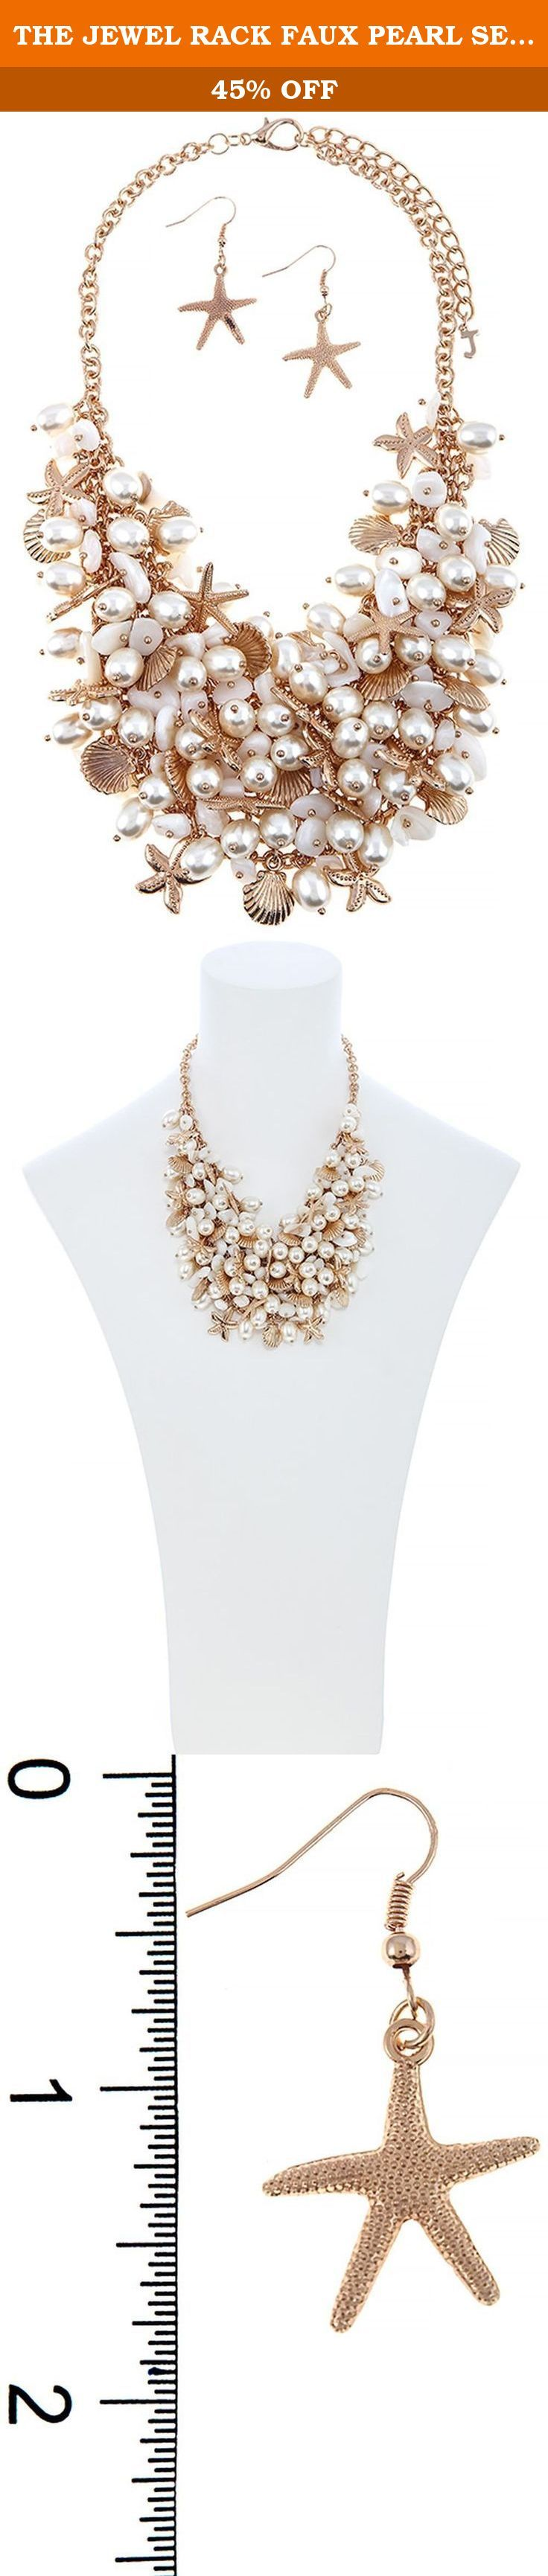 THE JEWEL RACK FAUX PEARL SEA CHARM BIB NECKLACE SET. FASHION DESTINATION PRESENTS THE JEWEL RACK FAUX PEARL SEA CHARM BIB NECKLACE SET. Buy brand-name Fashion Jewelry for everyday discount prices with Fashion Destination! Everyday LOW shipping *. Read product reviews on Fashion Necklaces, Fashion Bracelets, Fashion Earrings & more. Shop the Fashion Destination store for a wide selection of rings, bracelets, necklaces, earrings and diamond jewelry. Whether you are searching for men's…